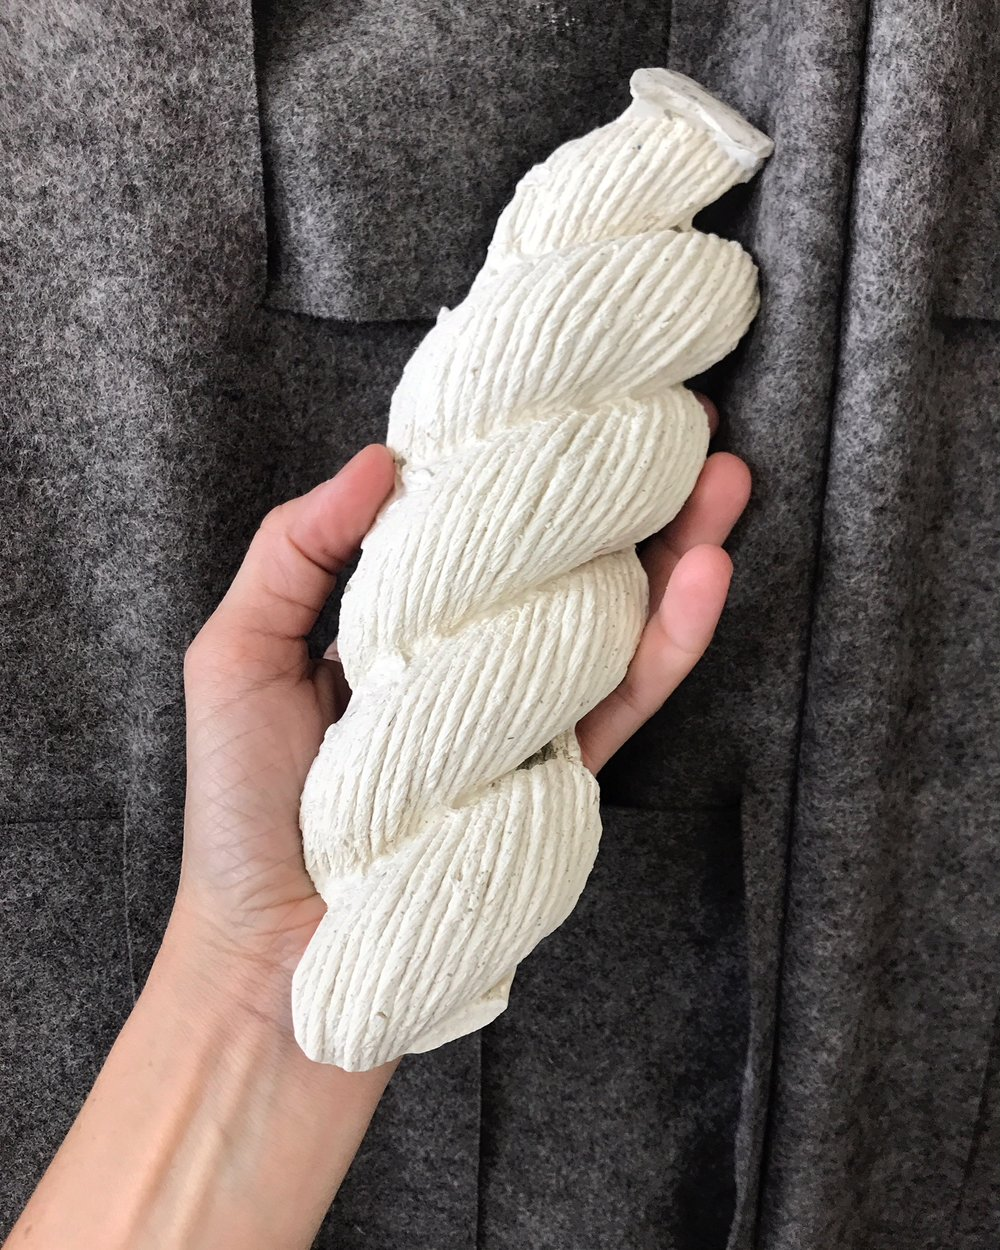 mold of shipping rope - plaster cast test